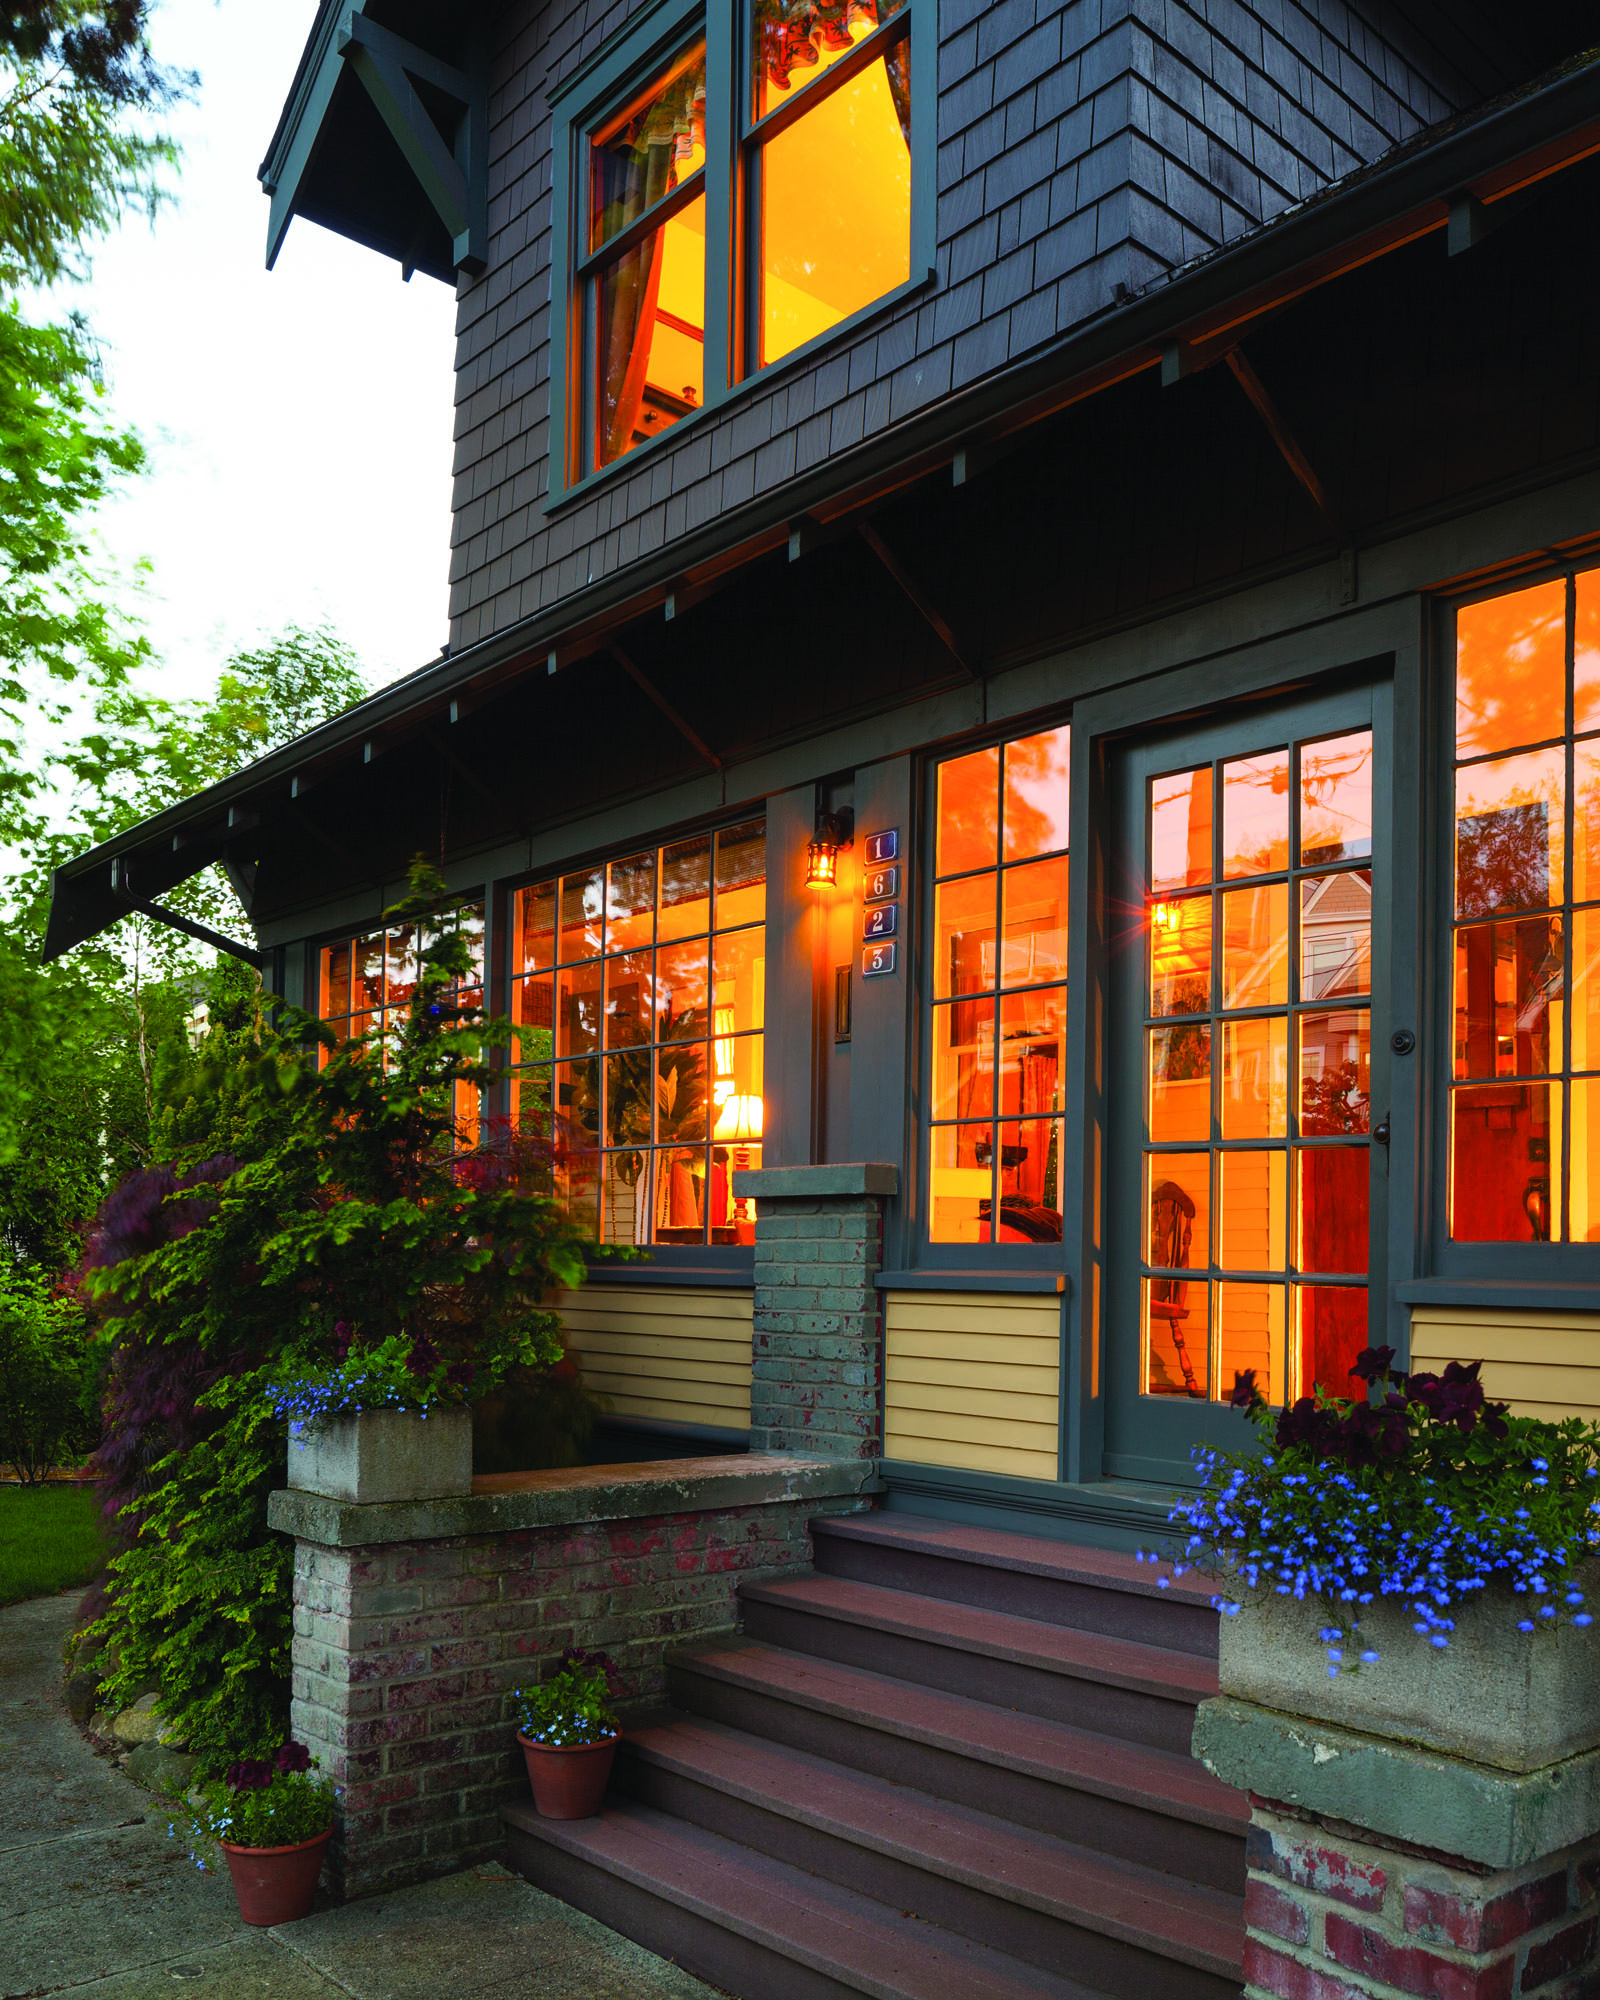 Liberated from asphalt siding, the original shiplap was restored and painted. Paint colors are Benjamin Moore 'Chestertown Buff' and 'Kendall Charcoal'. The enclosed sun-porch glows at dusk. opposite (inset) Homeown